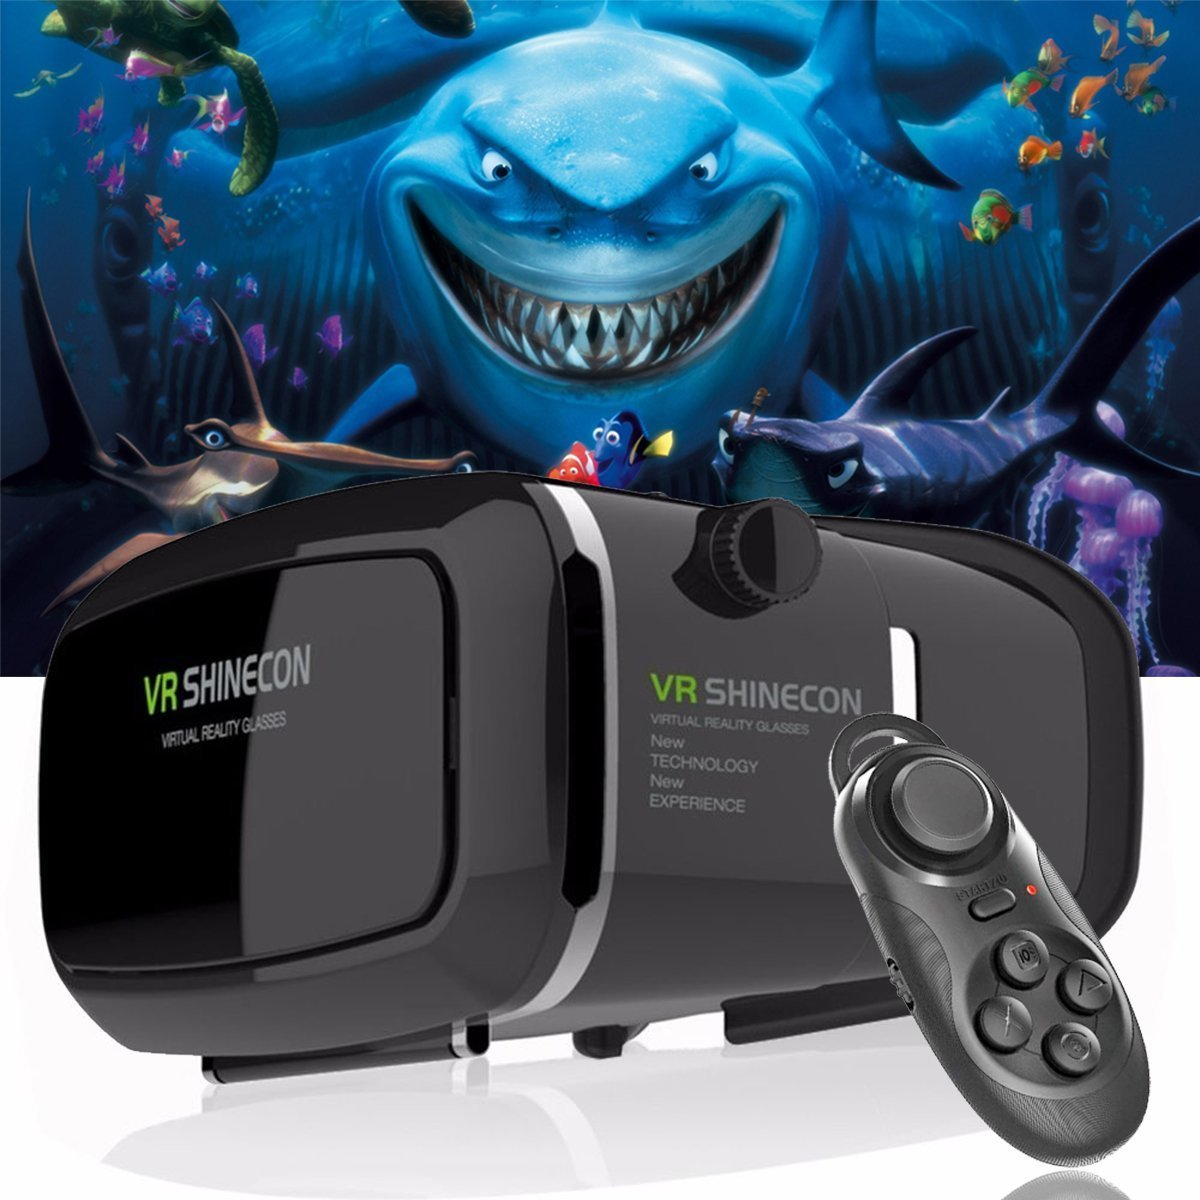 ZiKON 3D VR Headset Glasses Virtual Reality Mobile Phone 3D Movies for iPhone 6s/6 plus/6/5s/5c/5 Samsung Galaxy s5/s6/note4/note5 and Other 4.7''-6.0'' Cellphones